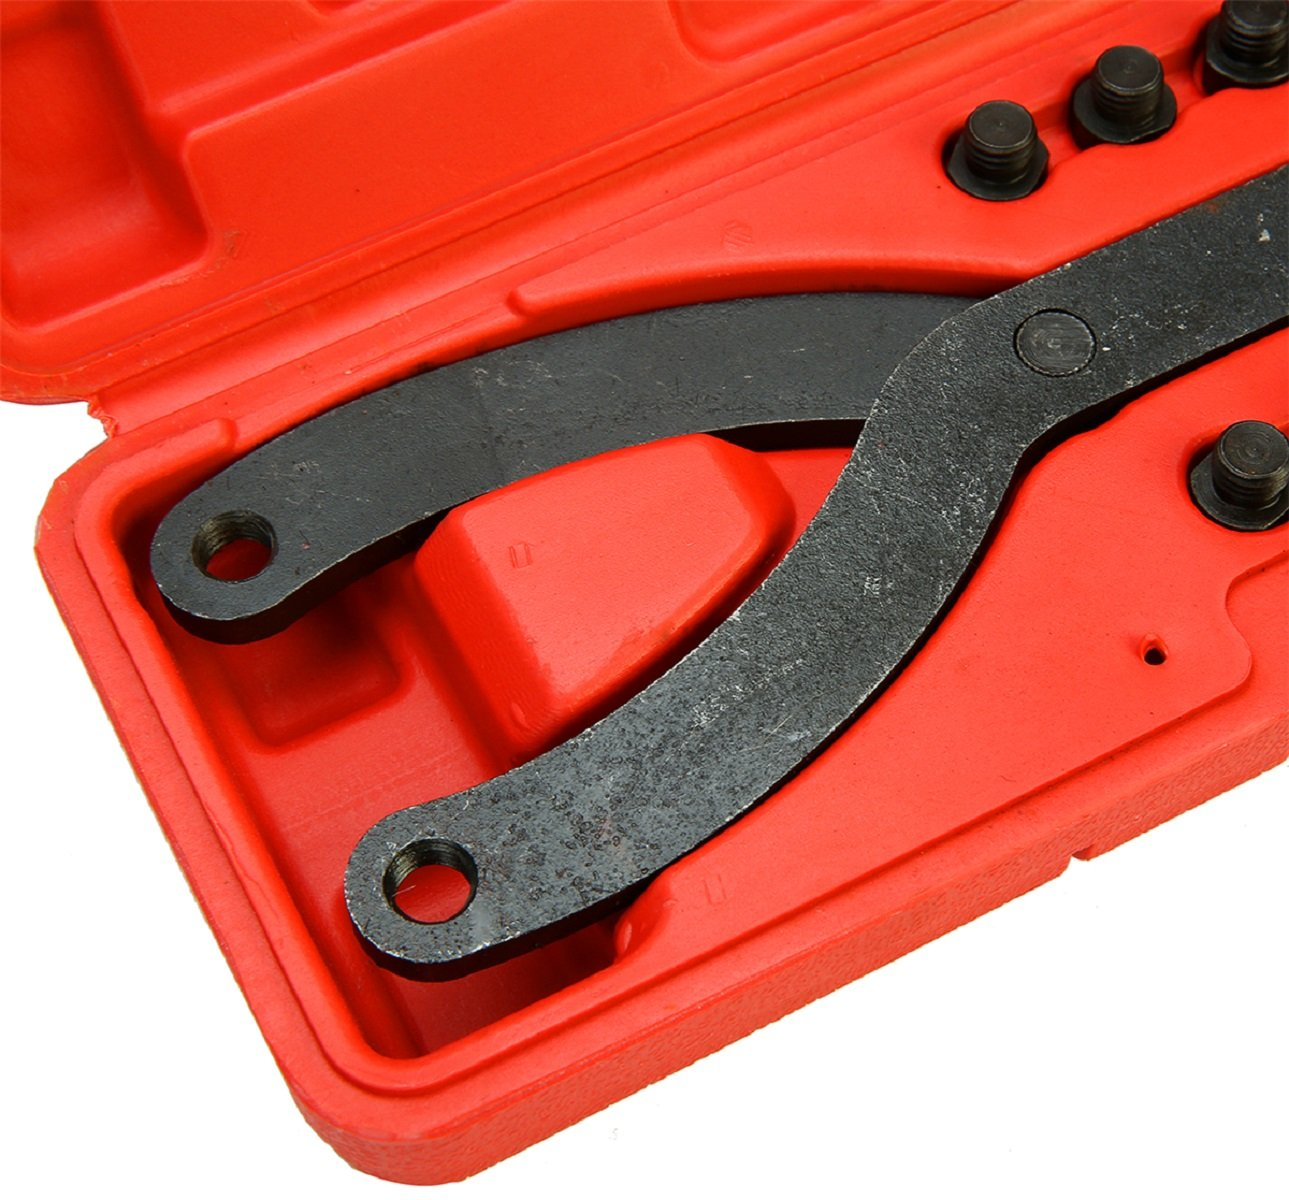 8MILELAKE Variable Pin Spanner Wrench 15 Piece Adjustable Fan Clutch Pully Holder Wrench